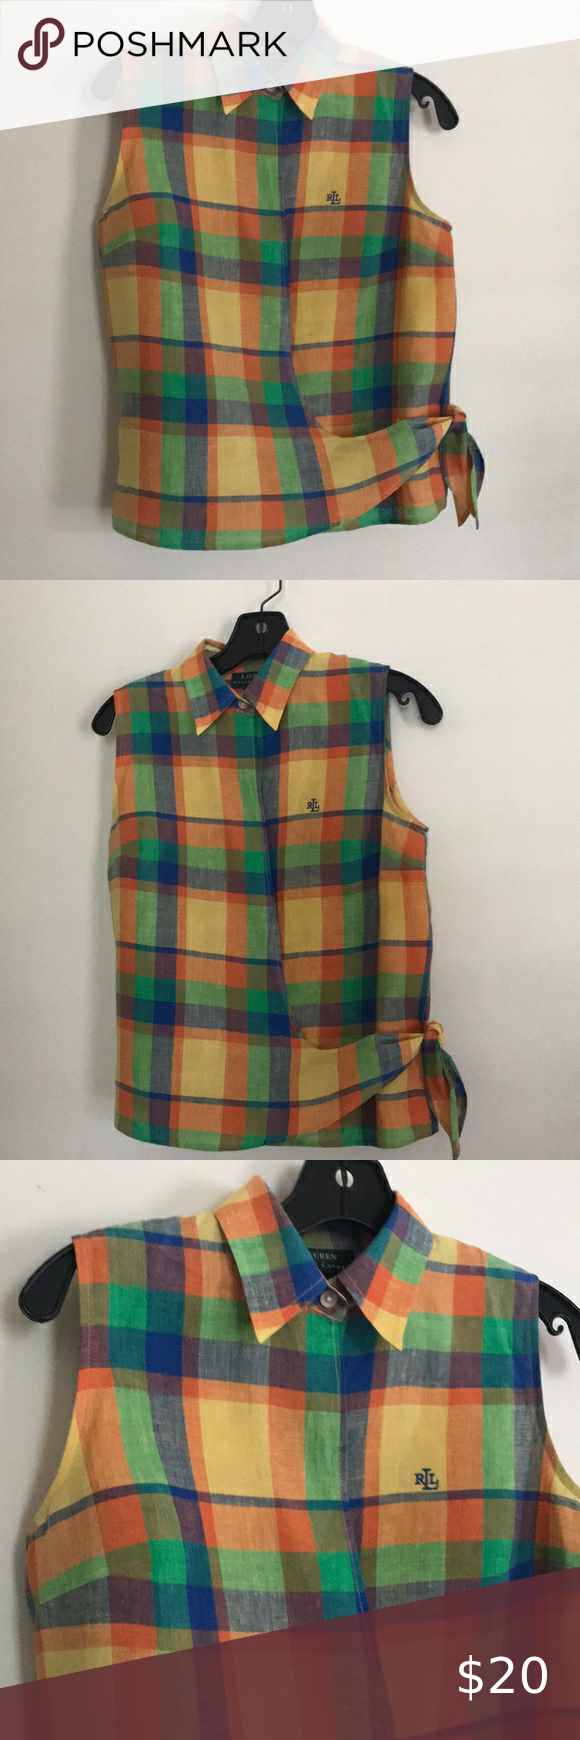 Spotted while shopping on Poshmark: Ralph Lauren Plaid Linen Wrap Top 4! #poshmark #fashion #shopping #style #Tops